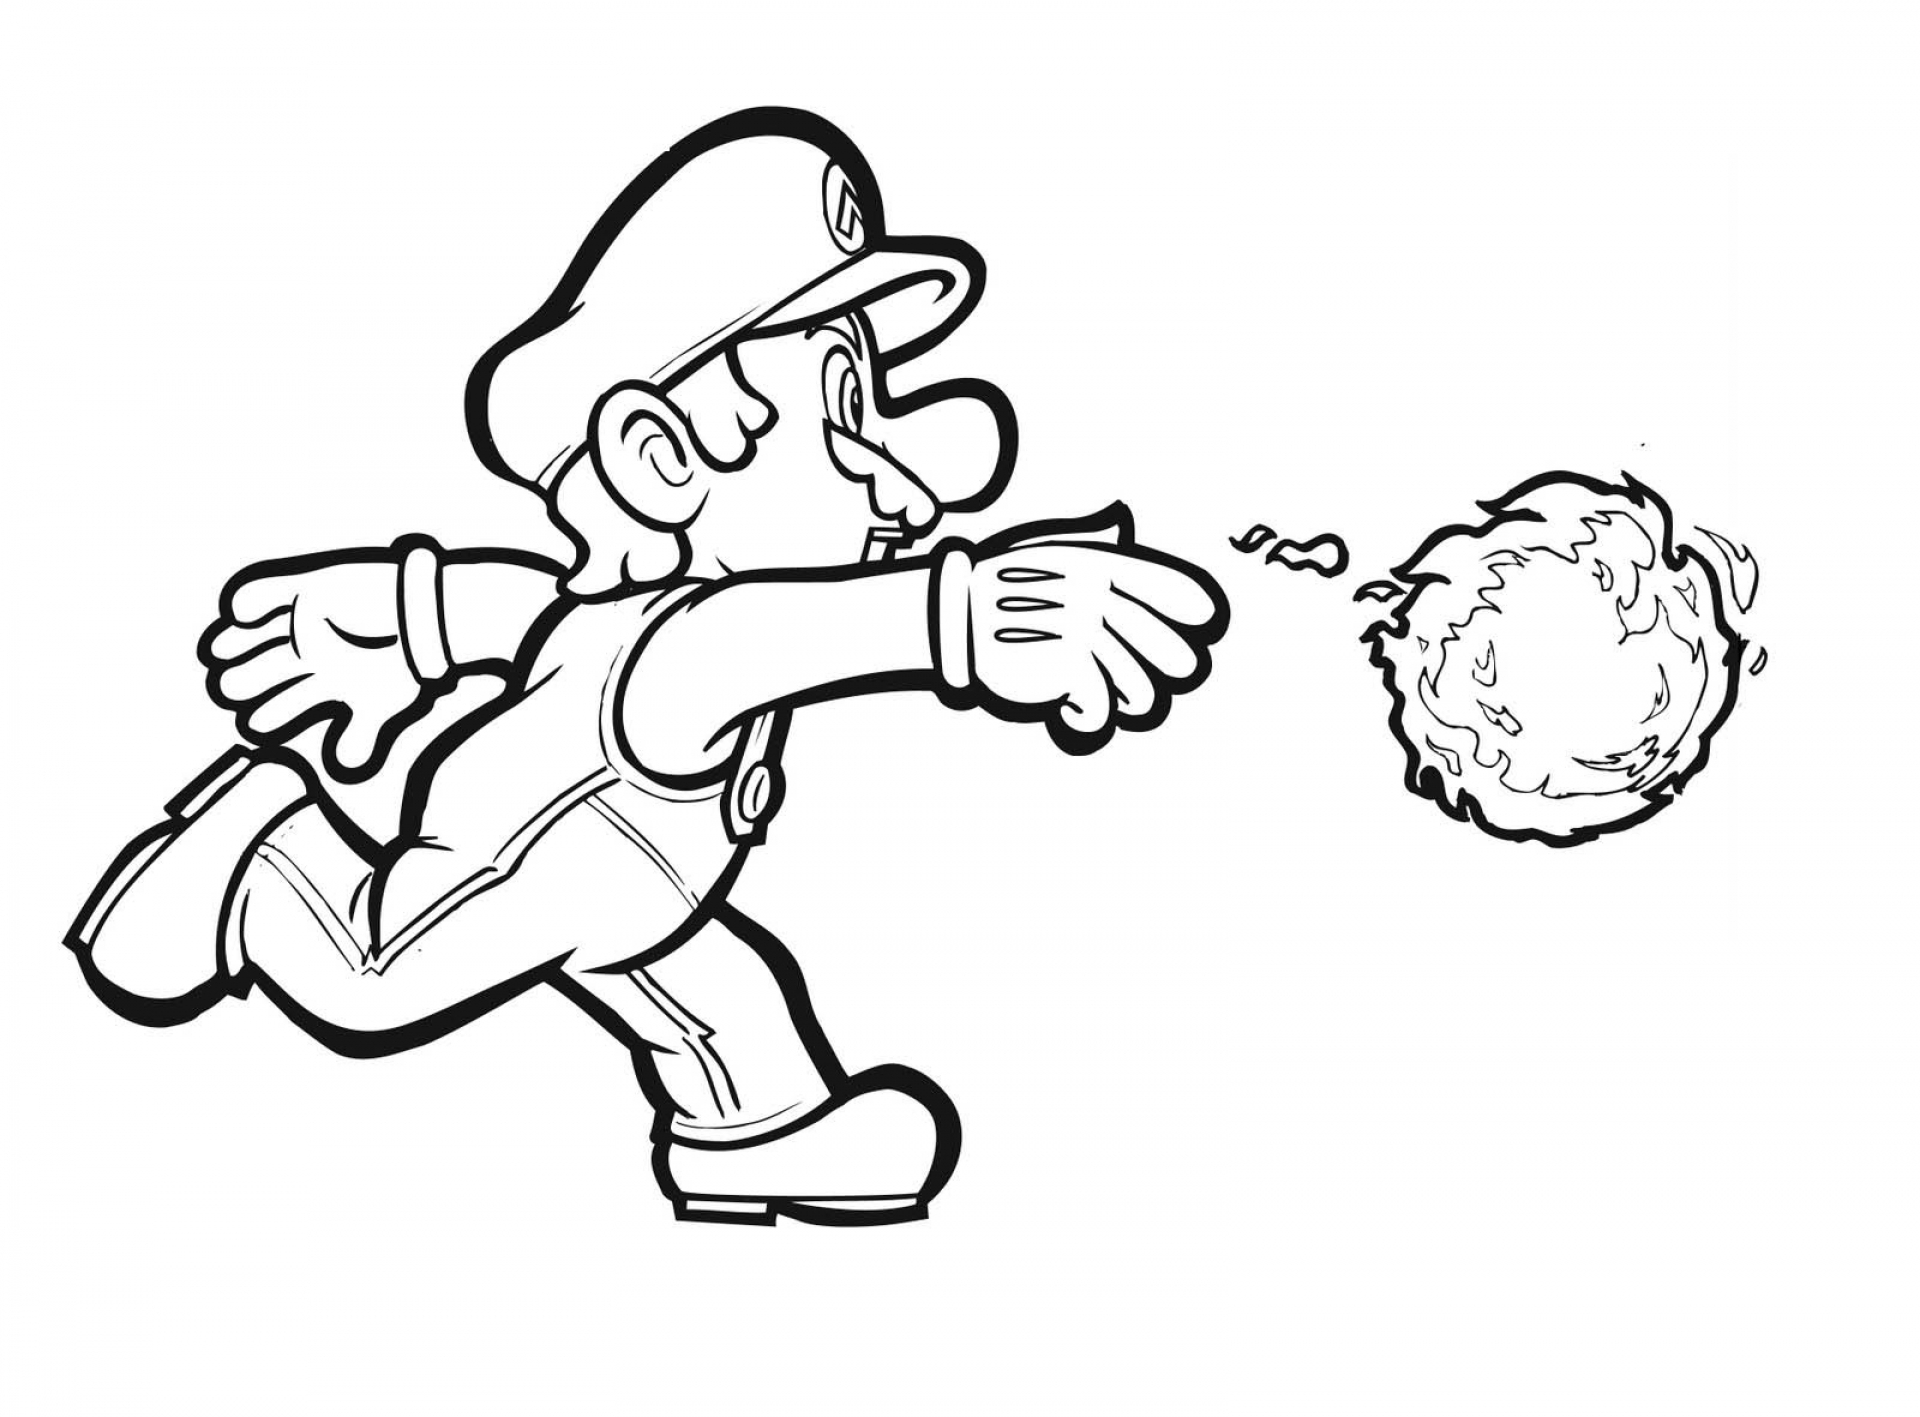 mario brothers coloring pages - super mario brothers coloring pages sketch templates